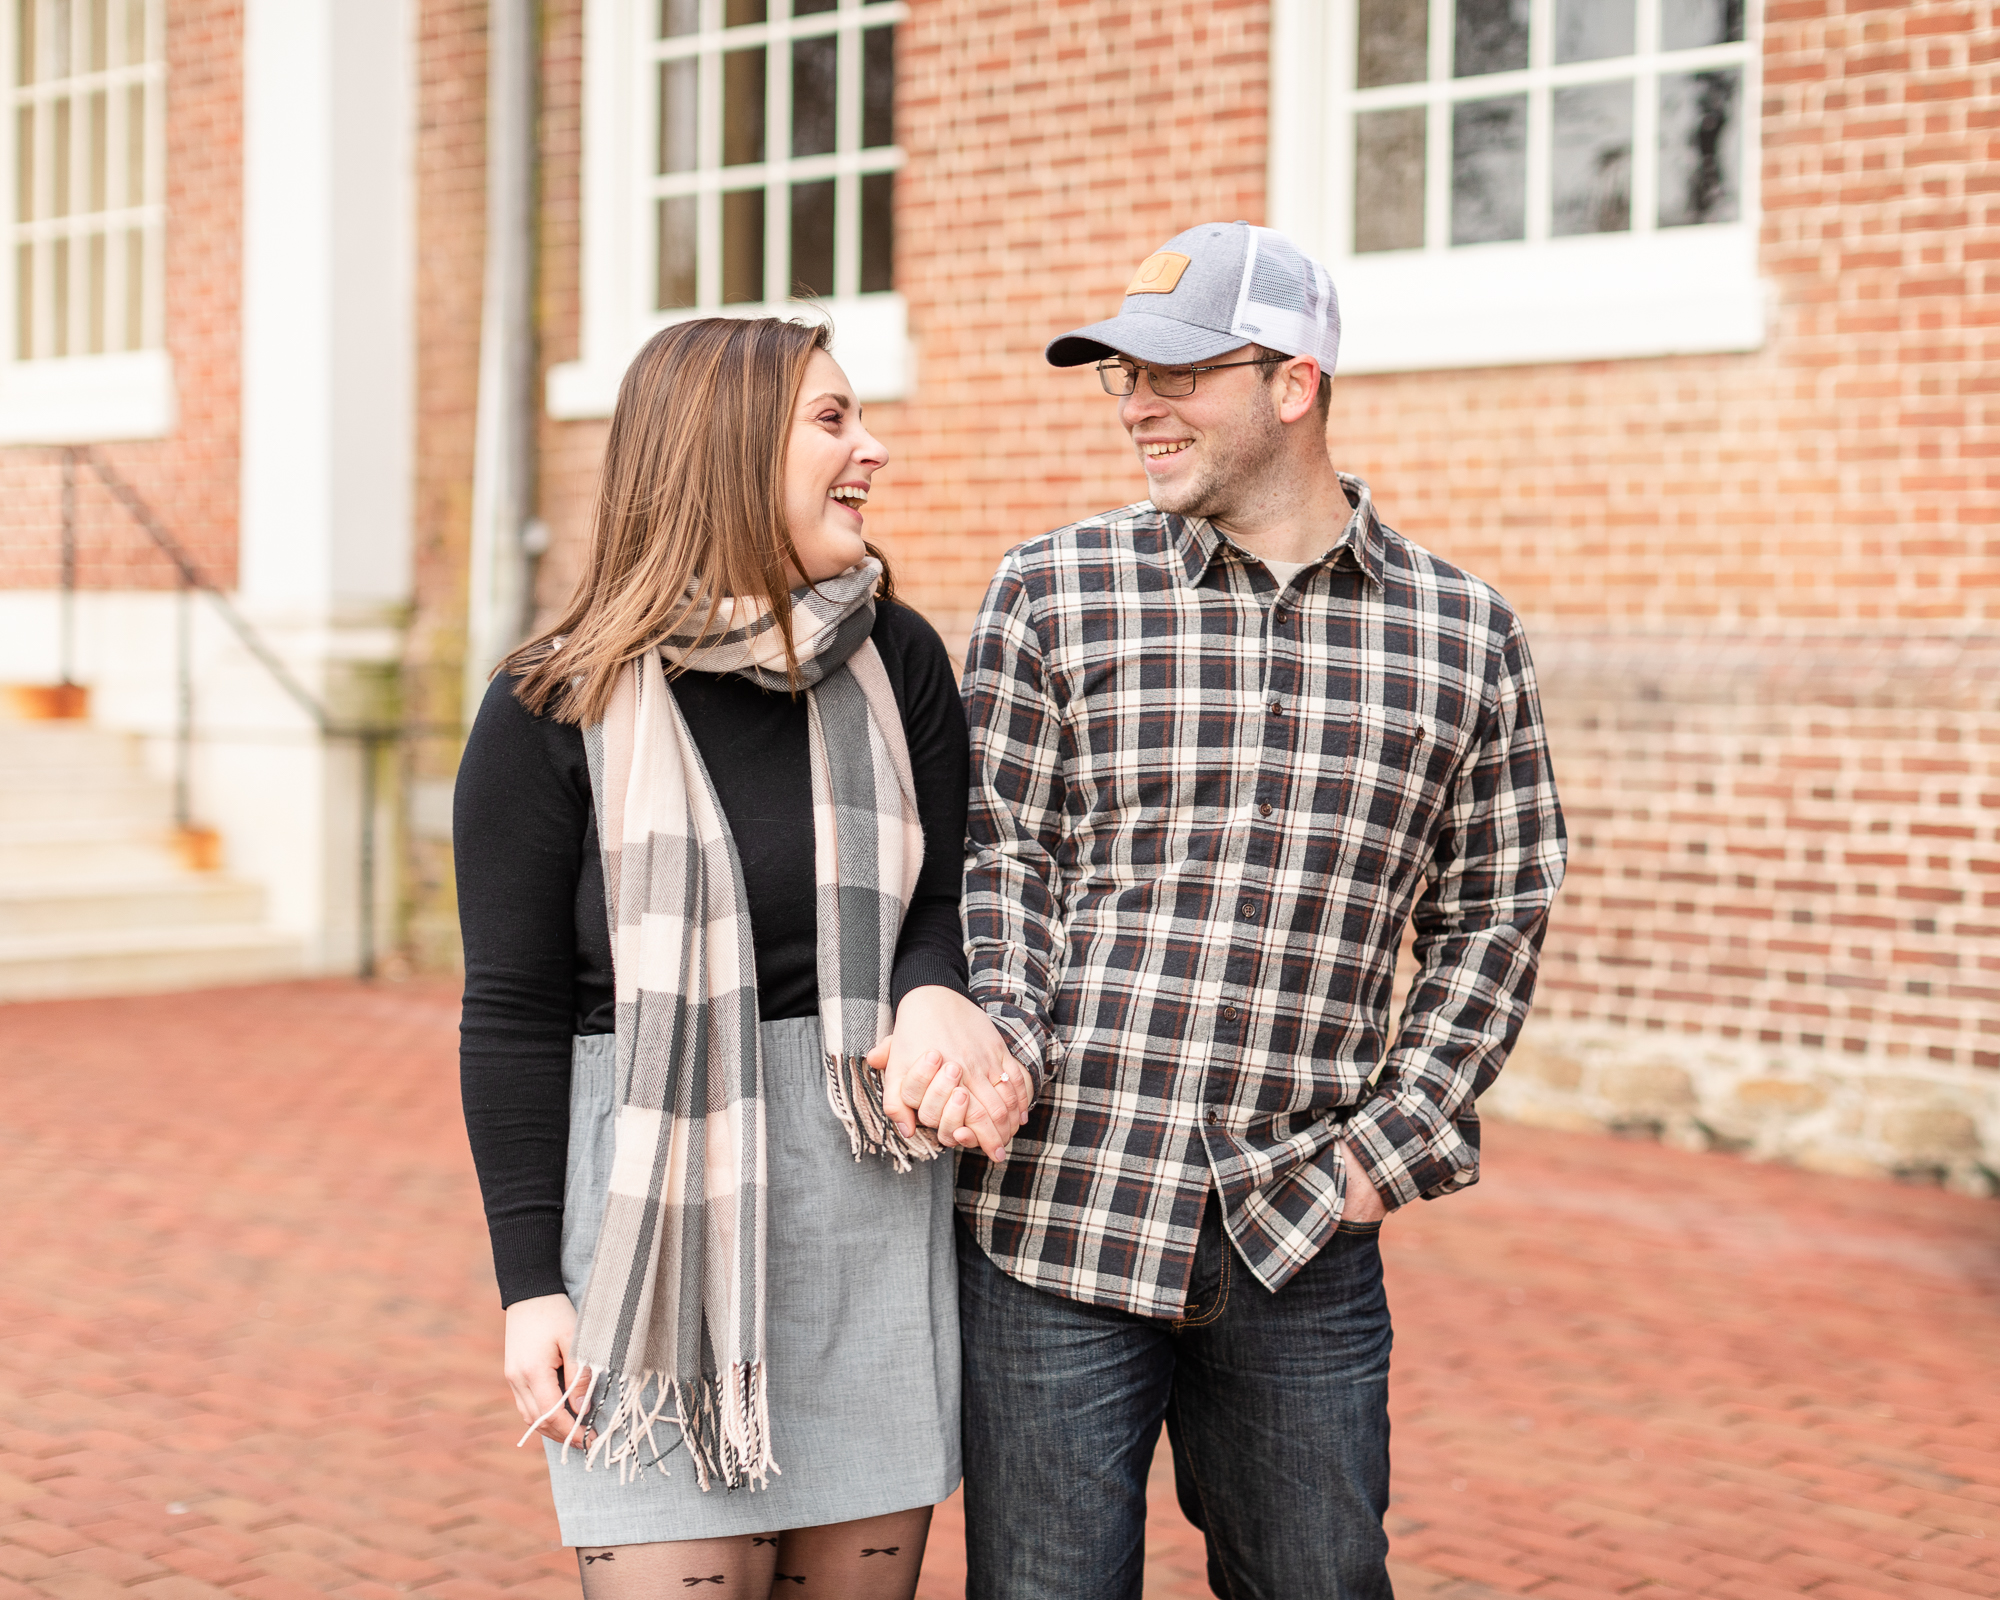 Annapolis-Engagement-Photos-1210.jpg